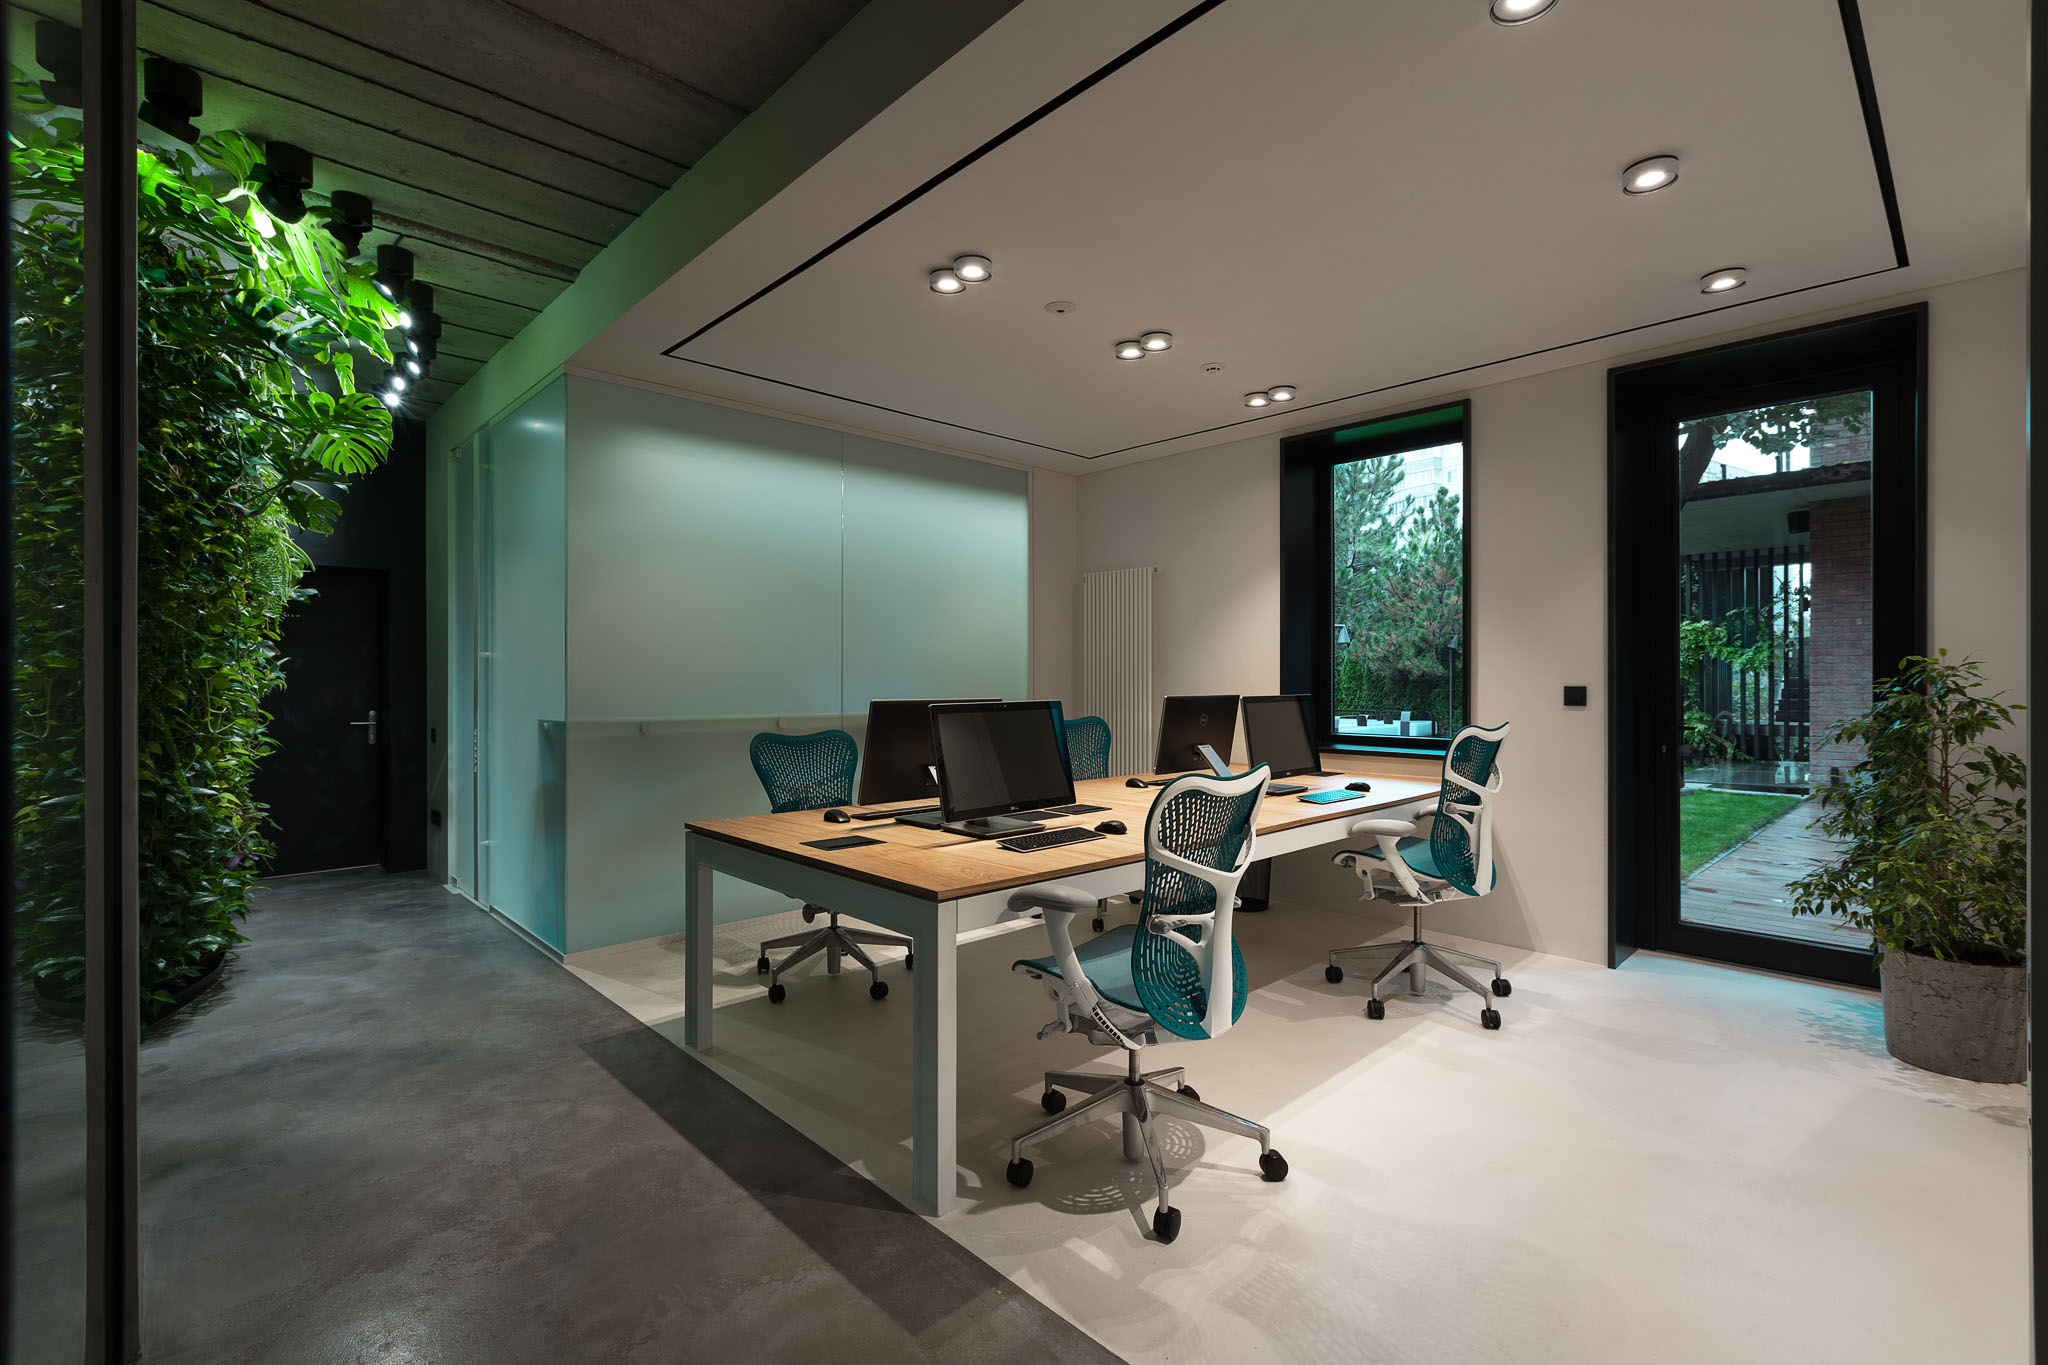 selectmens office hosted - HD1440×964